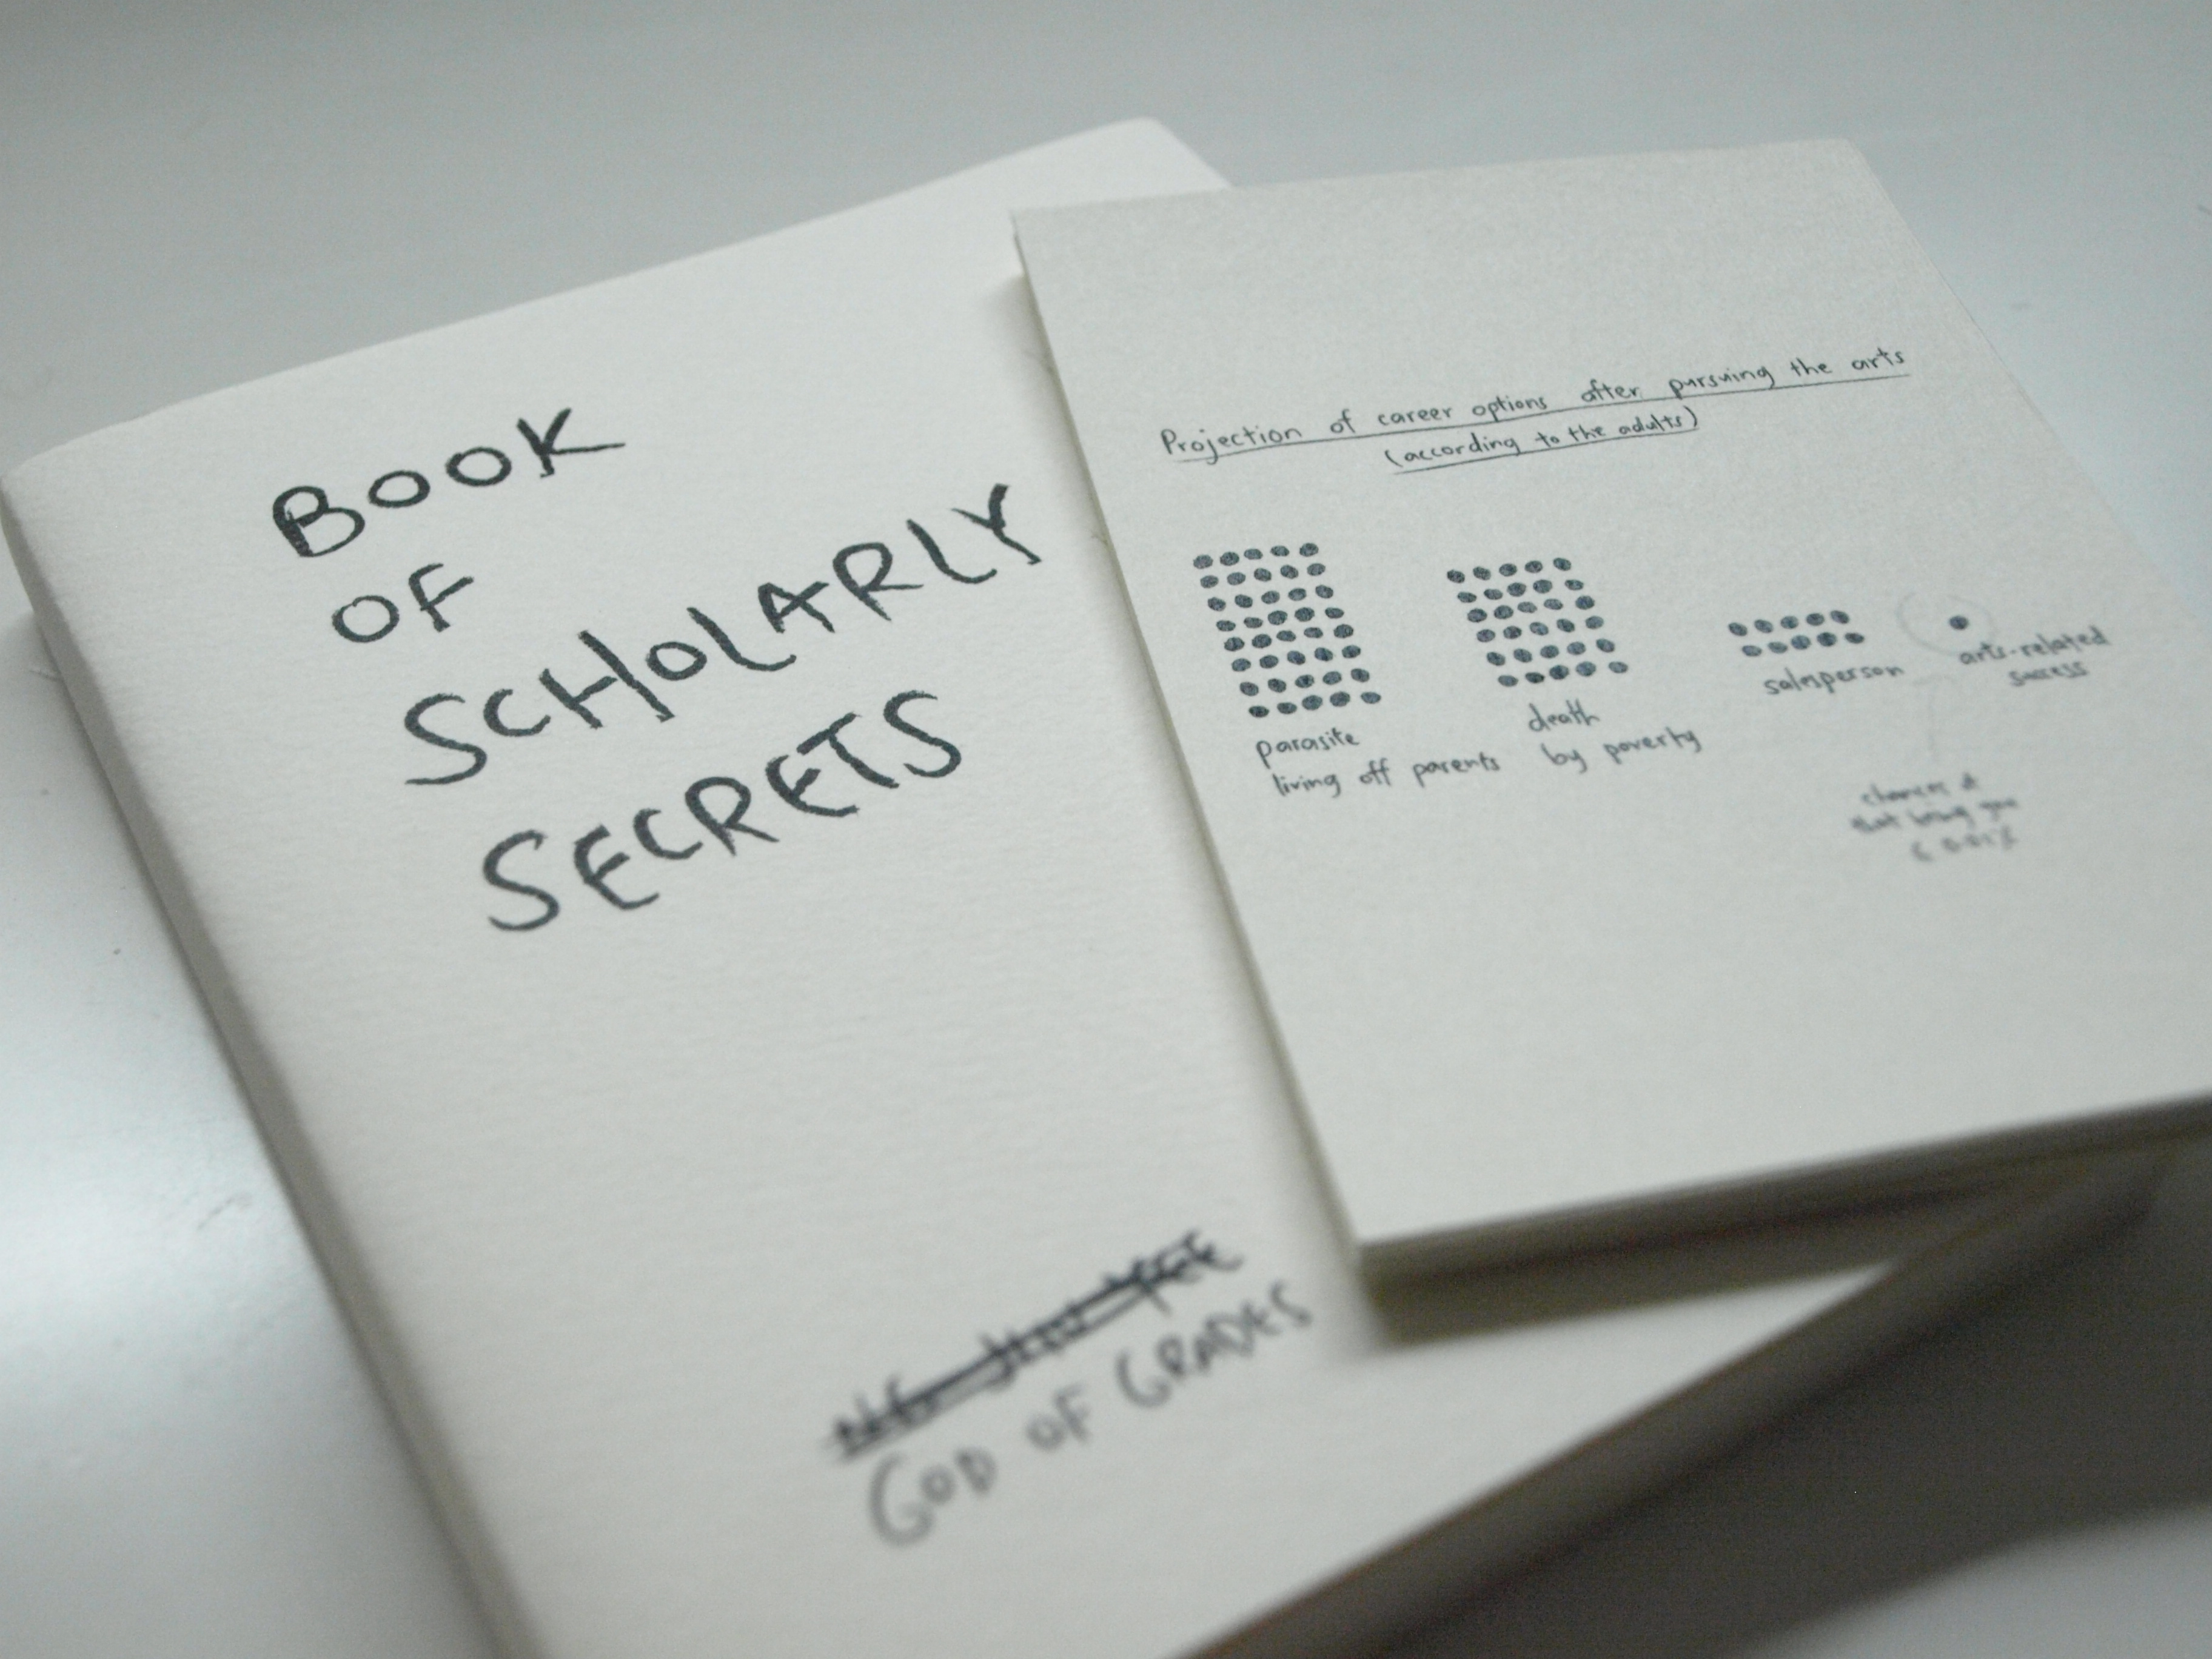 Book of Scholarly Secrets